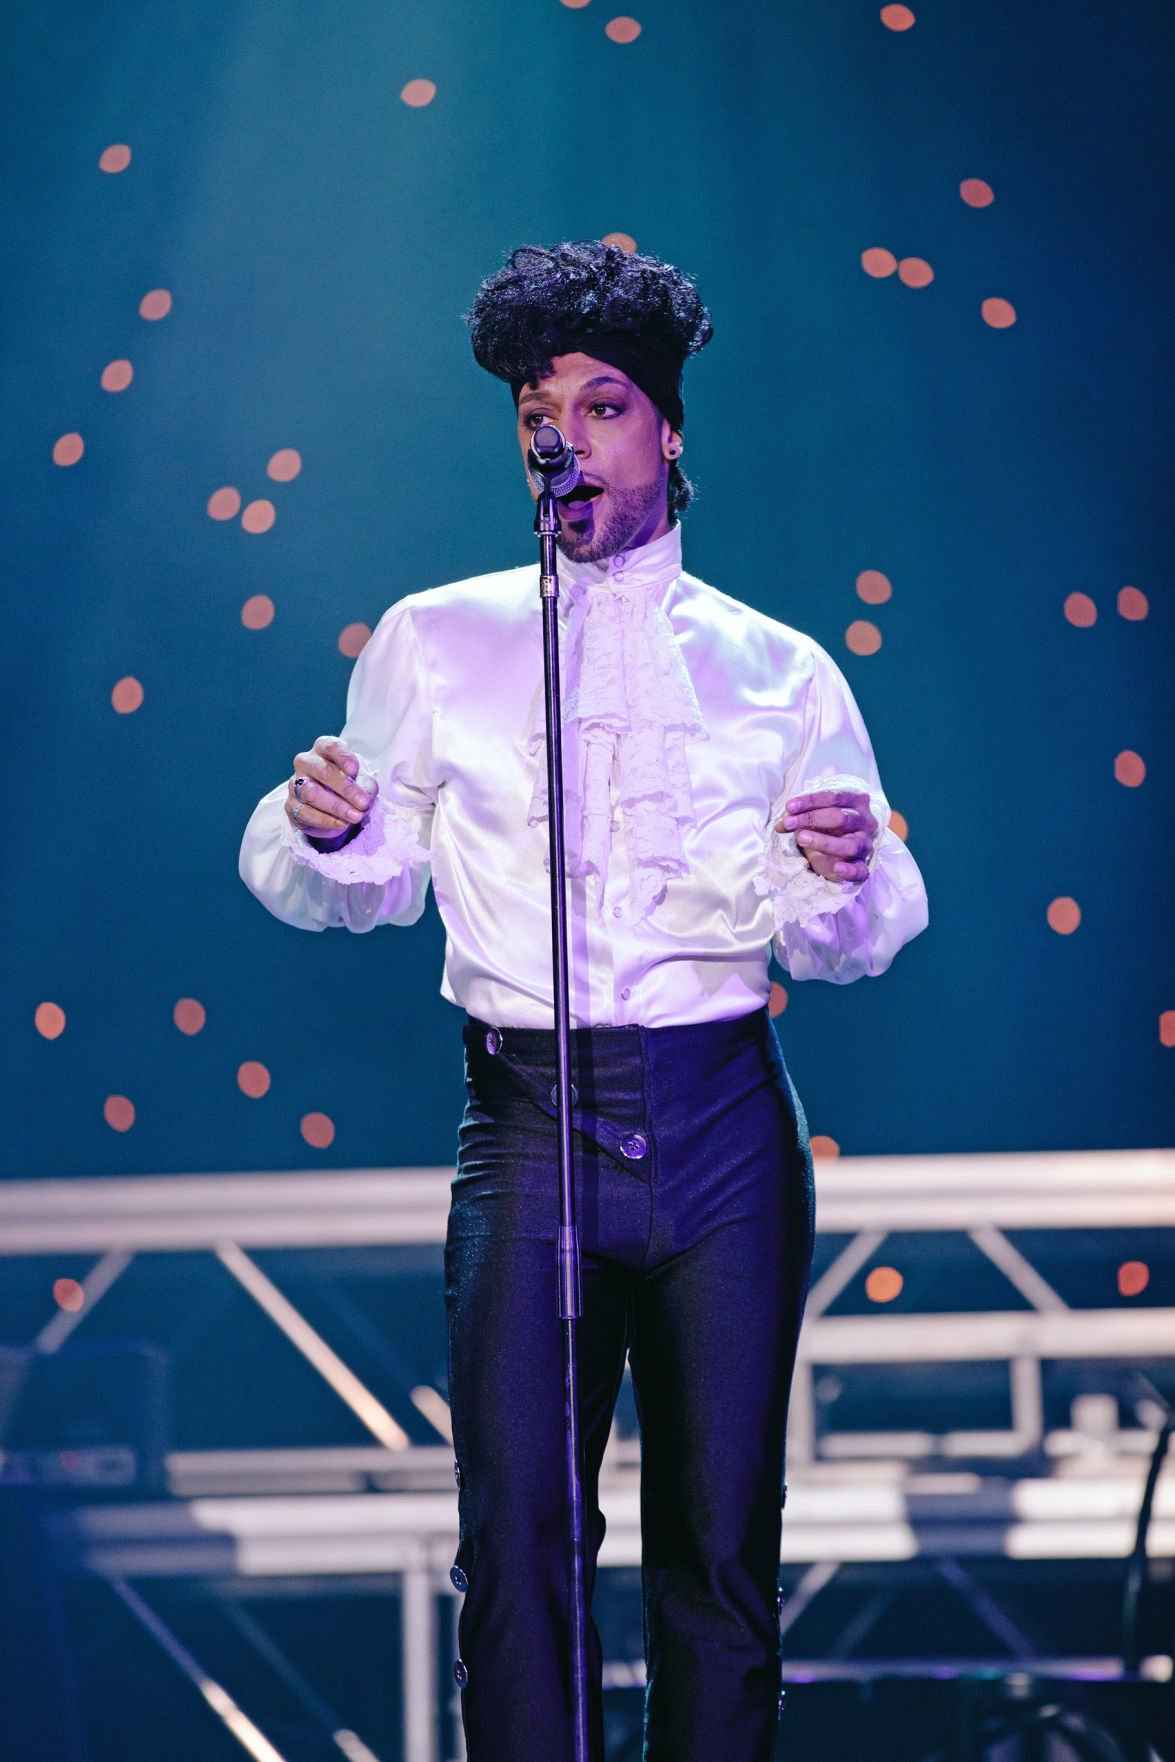 Purple Reign's Jason Tenner on meeting -- and channeling -- Prince